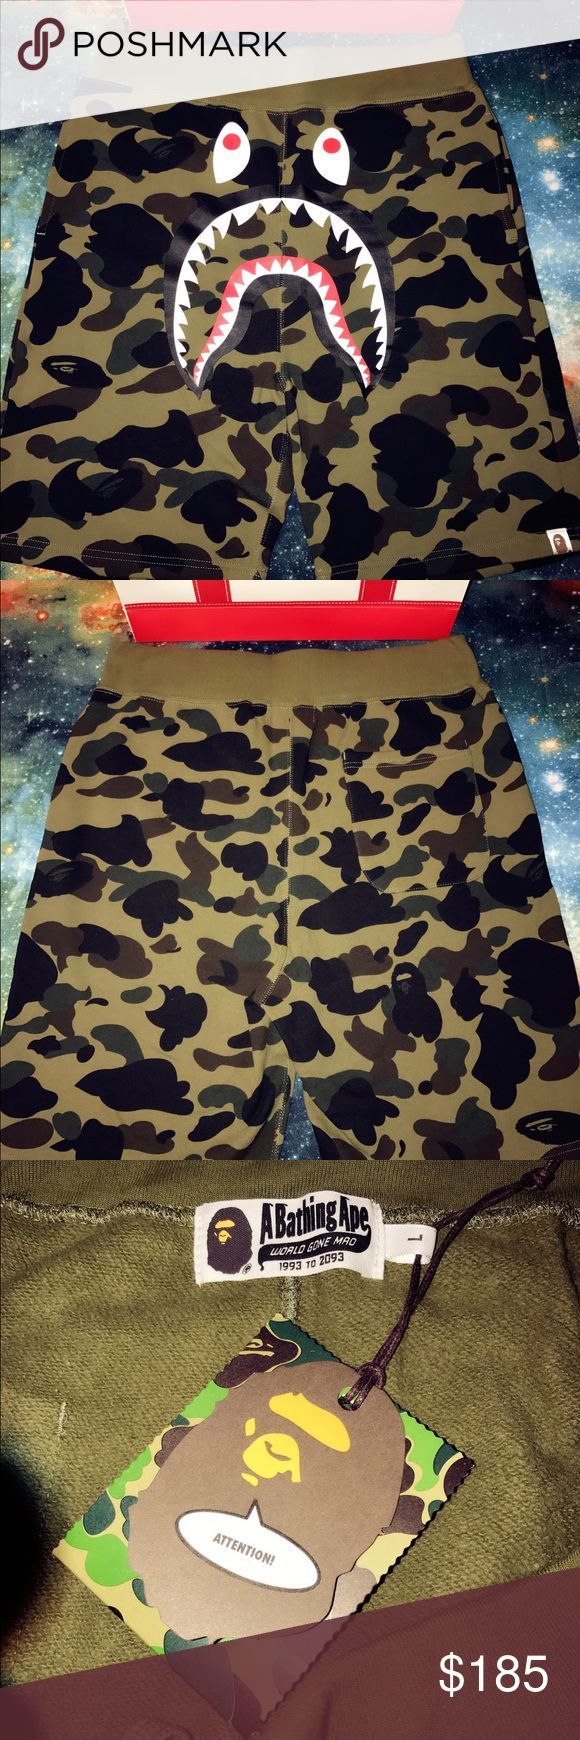 Bape Green 1st Camo Shark shorts Brand new with tags, invoice and dust bags. Purchased from Shibuya Bape store directly. A 4-year E-Commerce seller. Reliable and trusted. Feel free to contact me. Bape Shorts Athletic